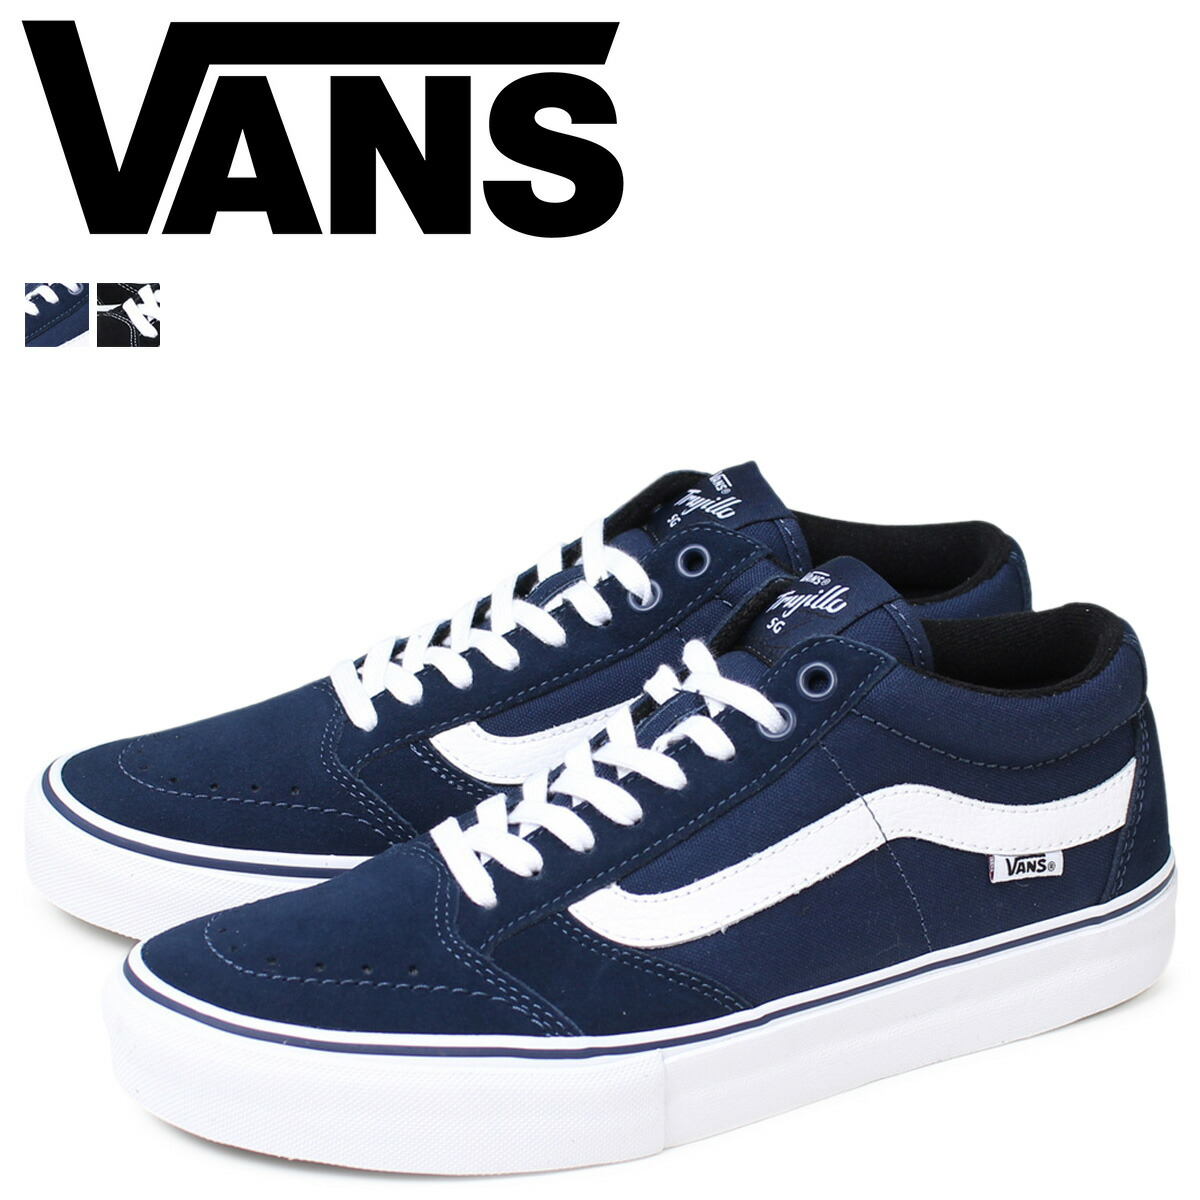 Vans Shoes Popularity In Japan